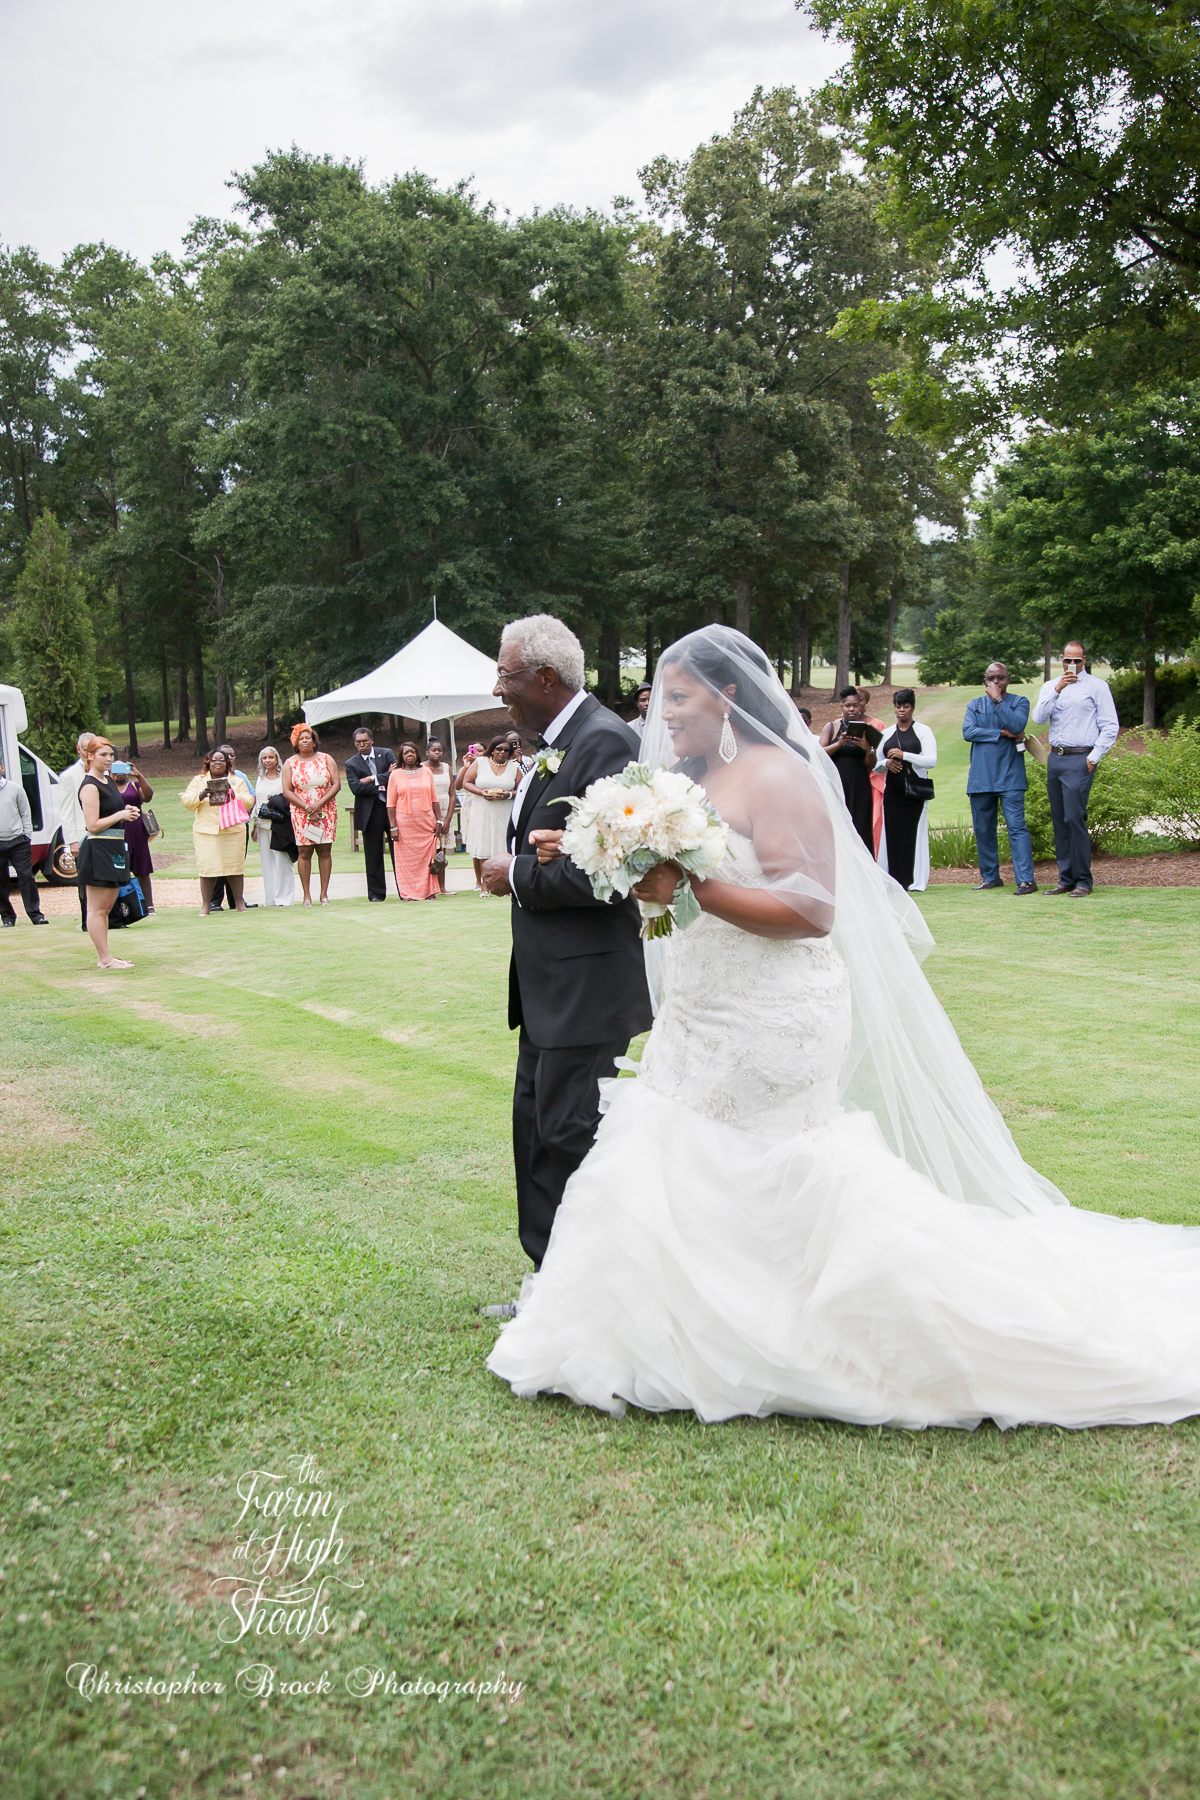 The Farm at High Shoals -- Atlanta Vineyard Wedding Venue (155 of 676)